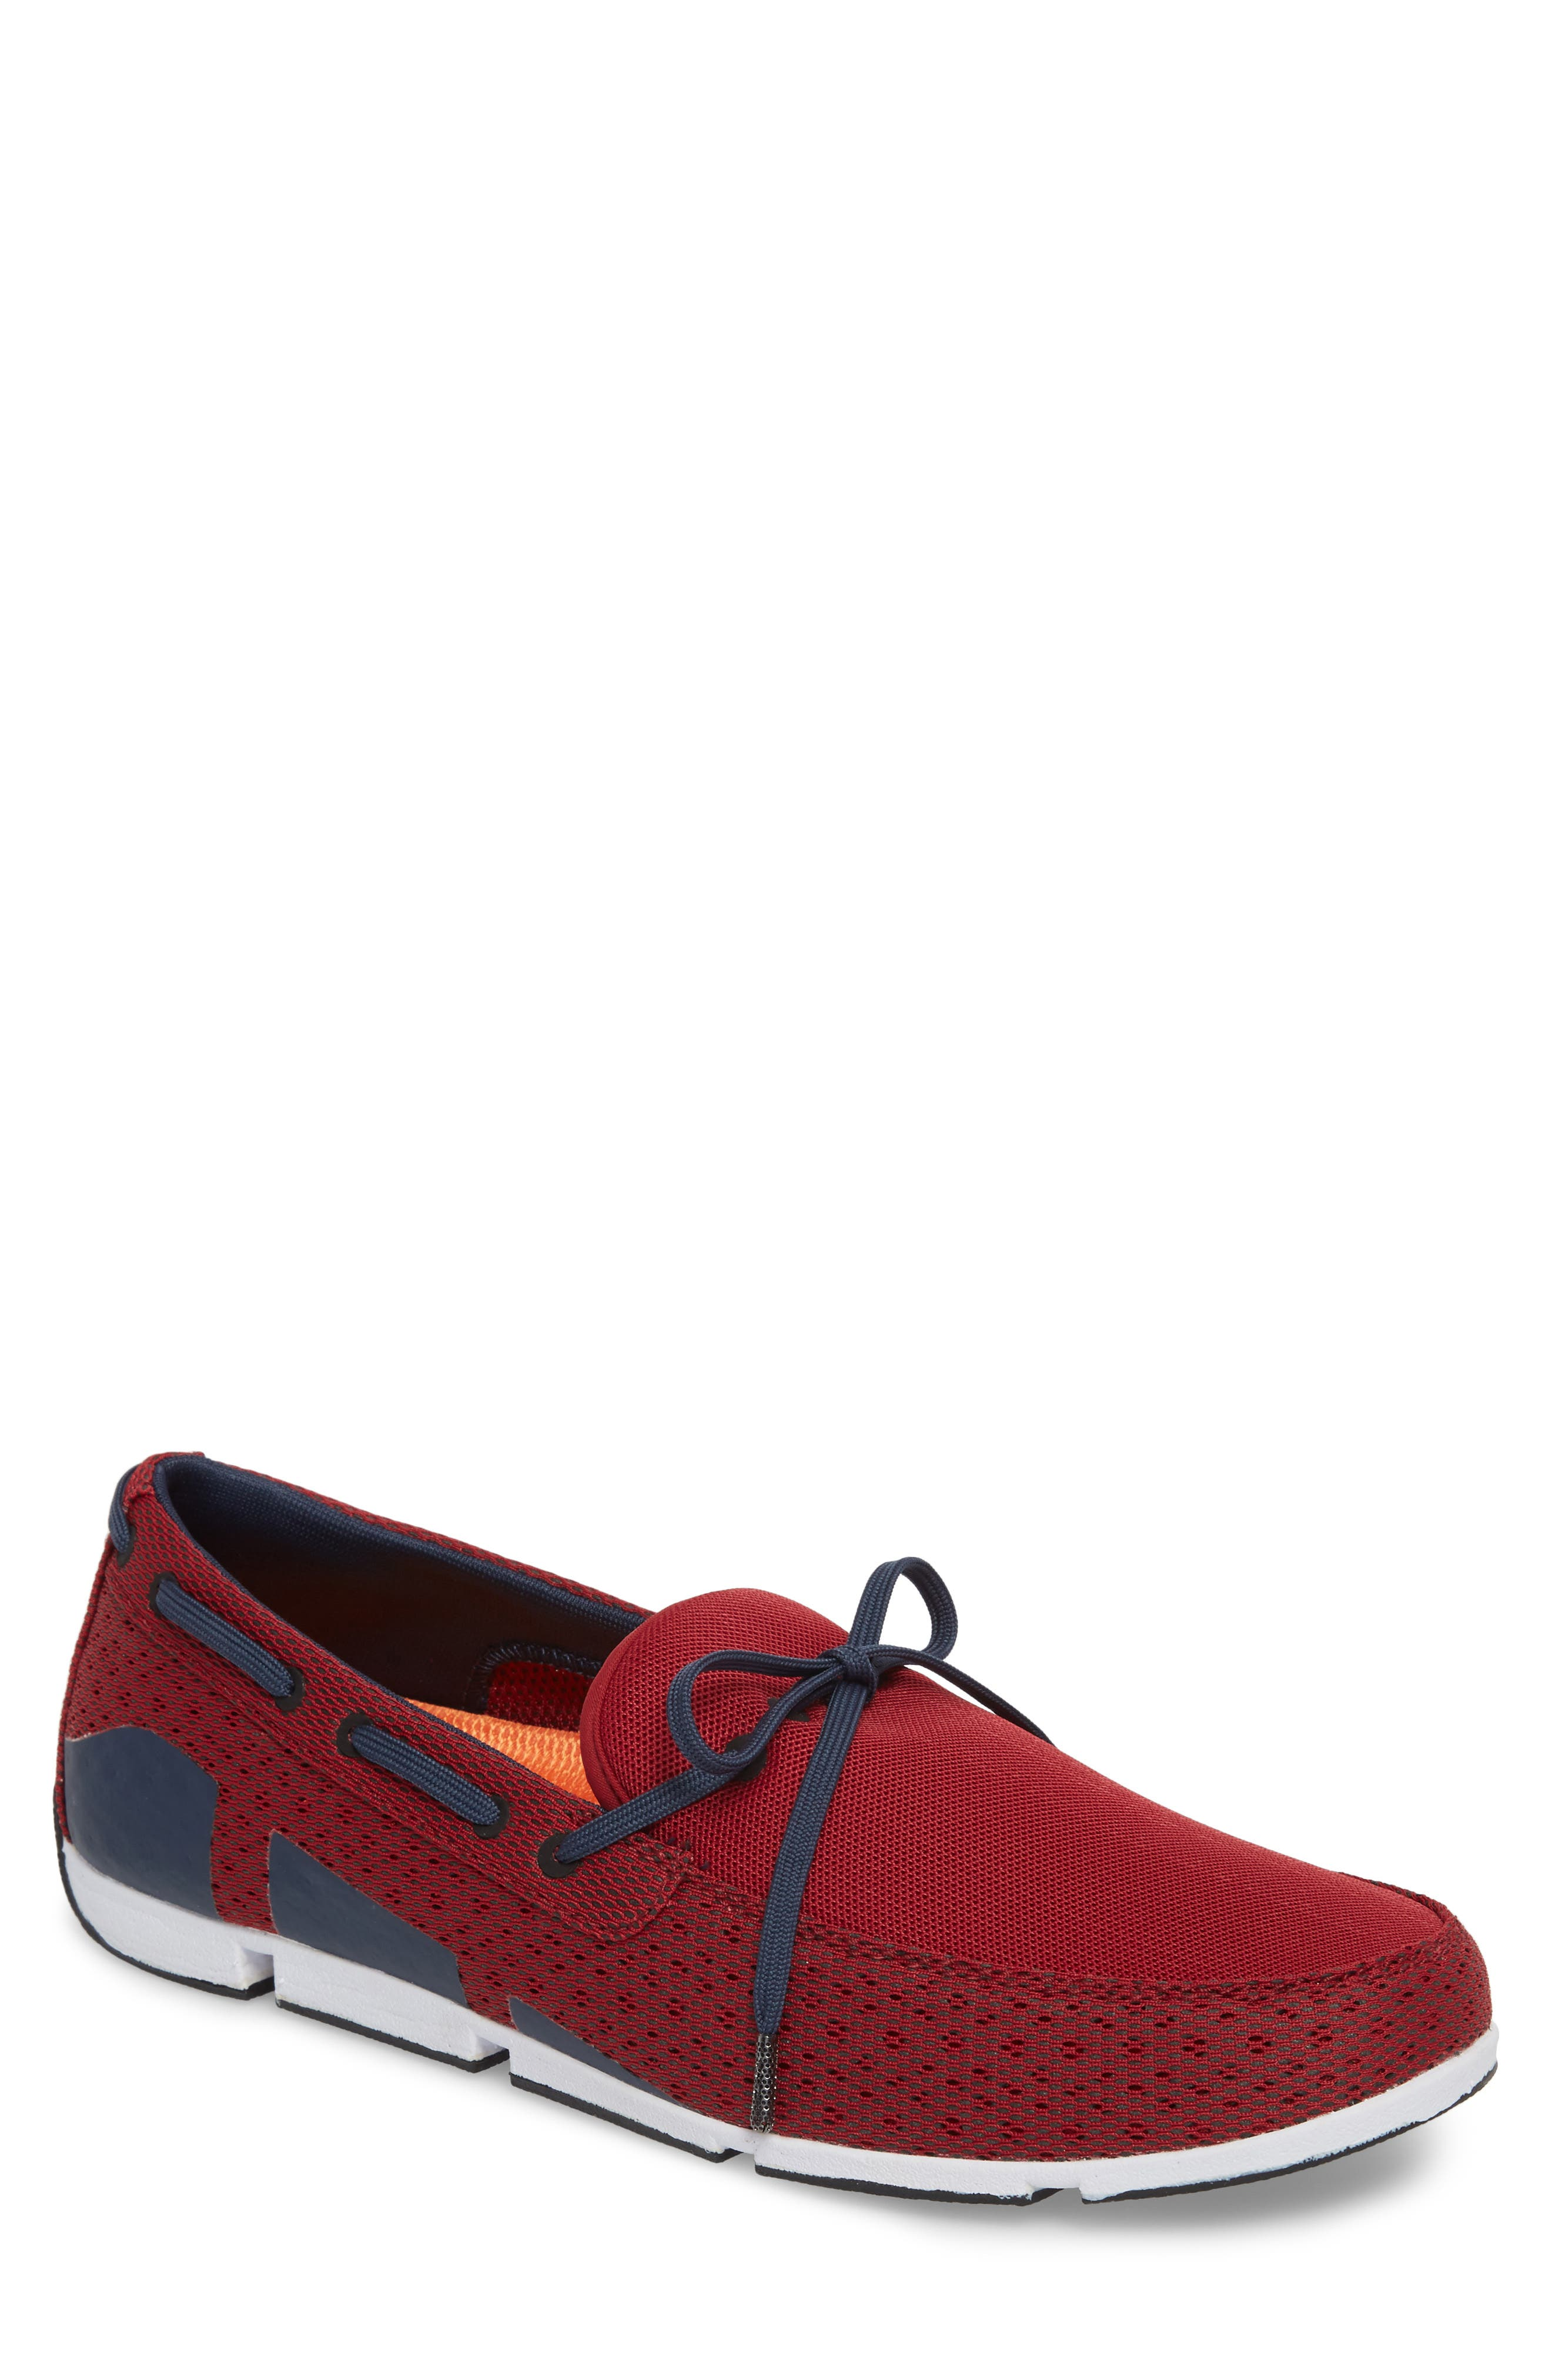 Breeze Loafer,                             Main thumbnail 1, color,                             Deep Red/ Navy/ White